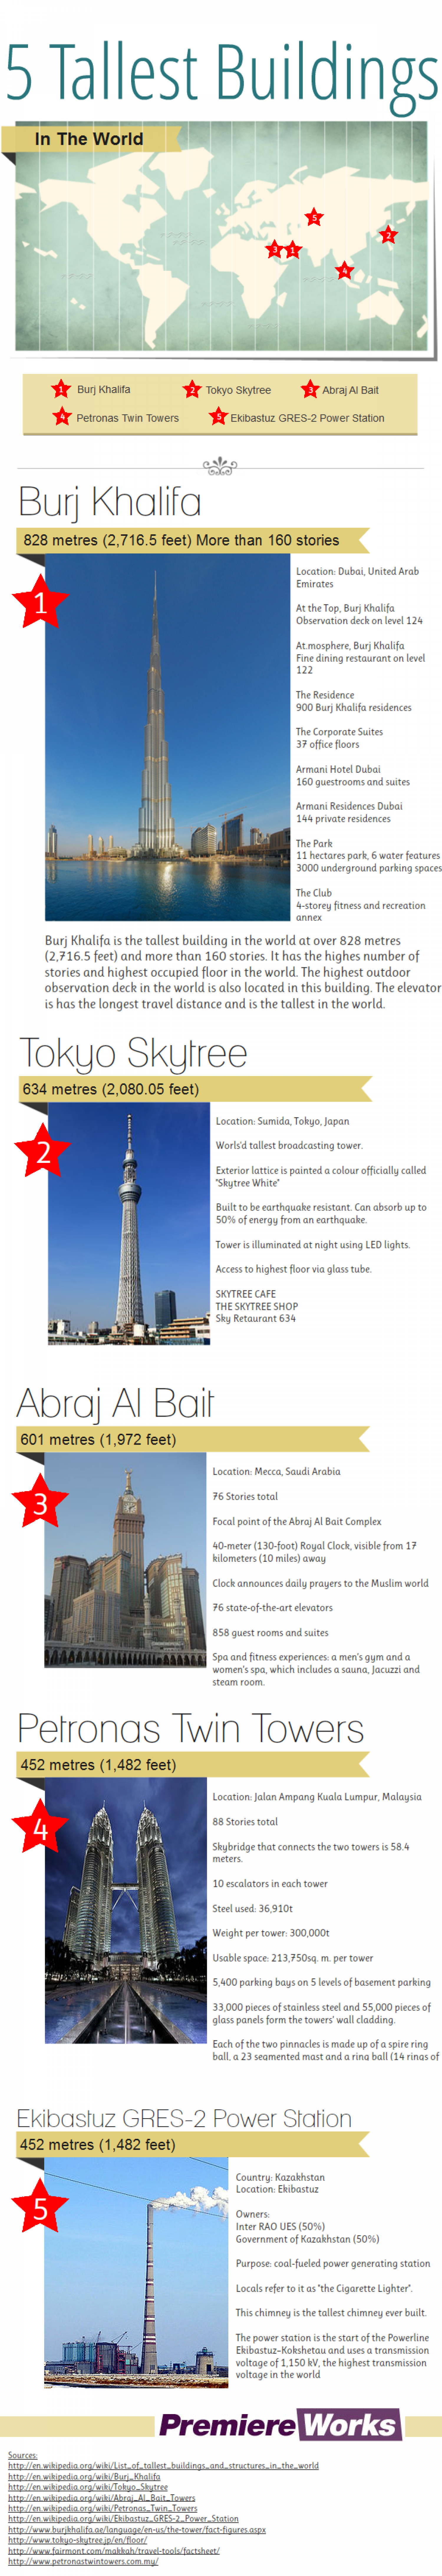 5 Tallest Buildings Infographic